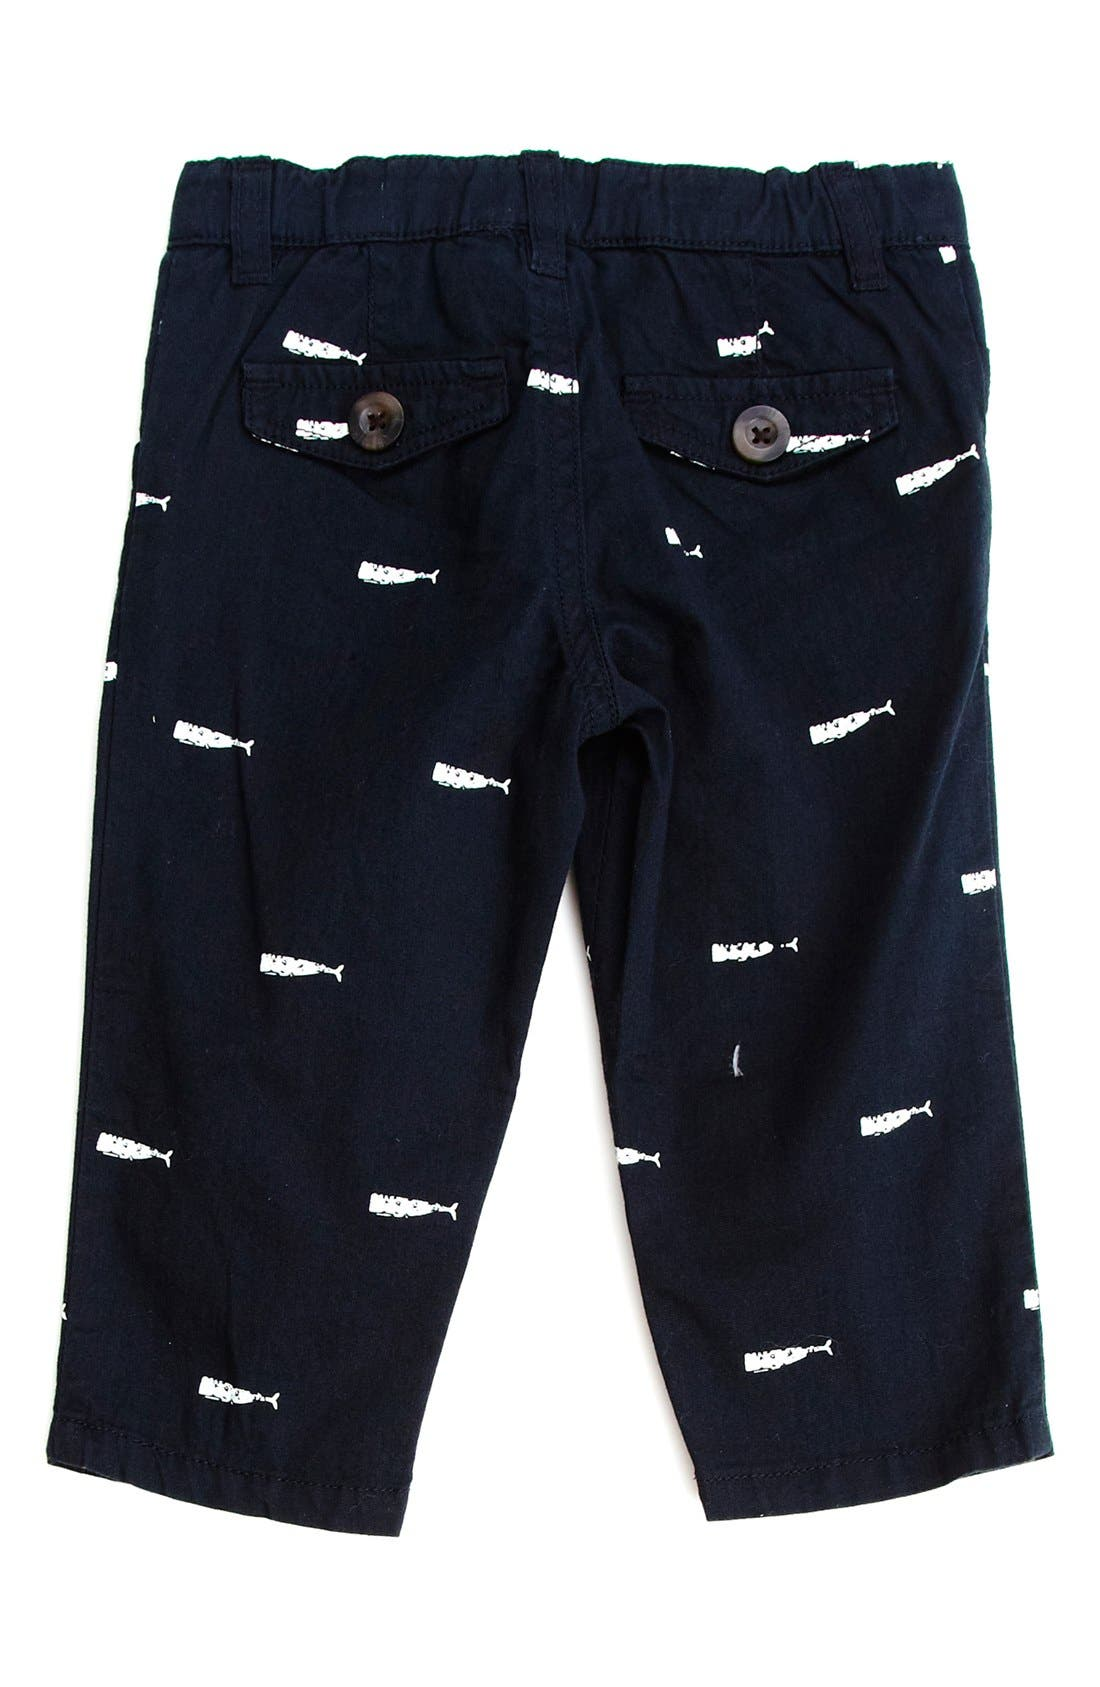 Alternate Image 2  - Peek Whale Print Shorts (Toddler Boys, Little Boys & Big Boys)